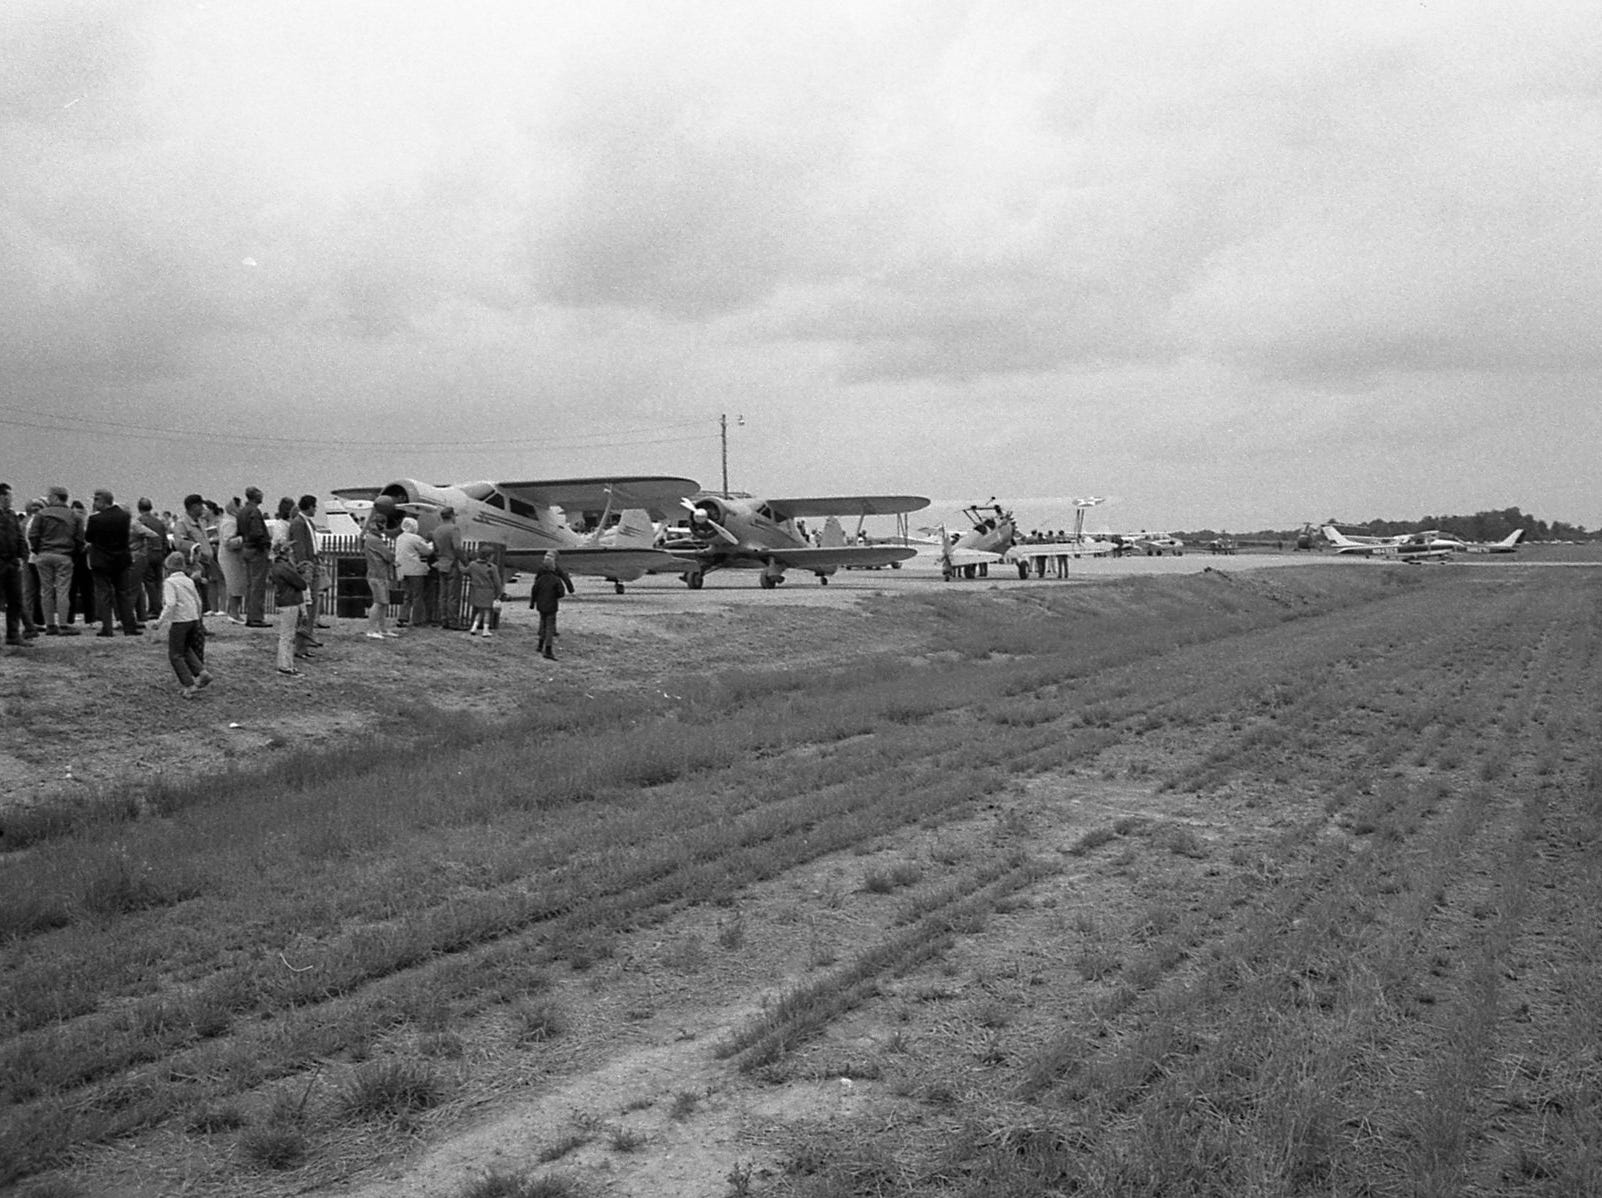 The Ross County Airport was dedicated in May 1970 in an event that included aerial entertainment.